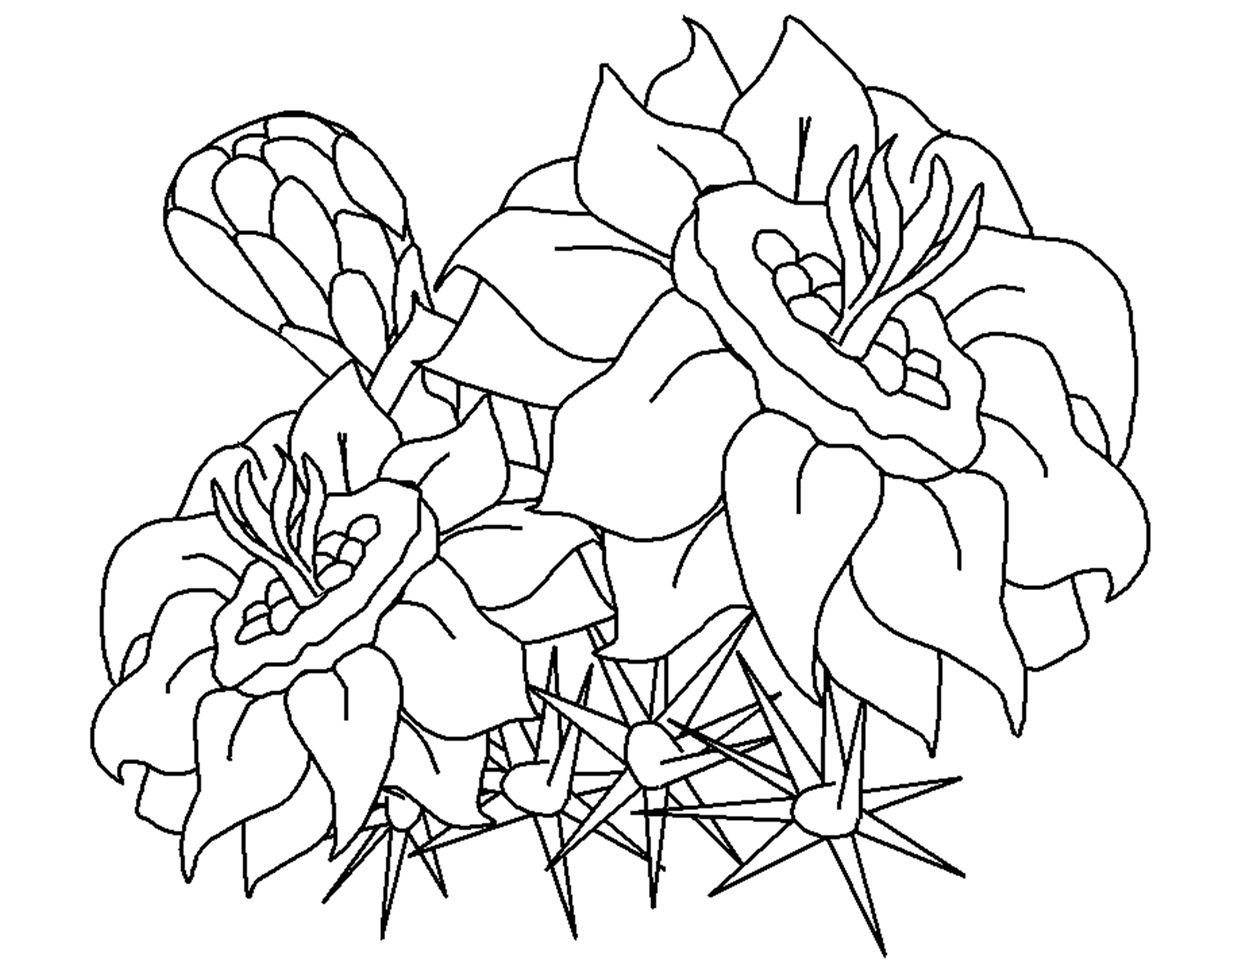 flower coloring pages free printable coloring pages worksheets simple flower coloring pages printable pages free flower coloring